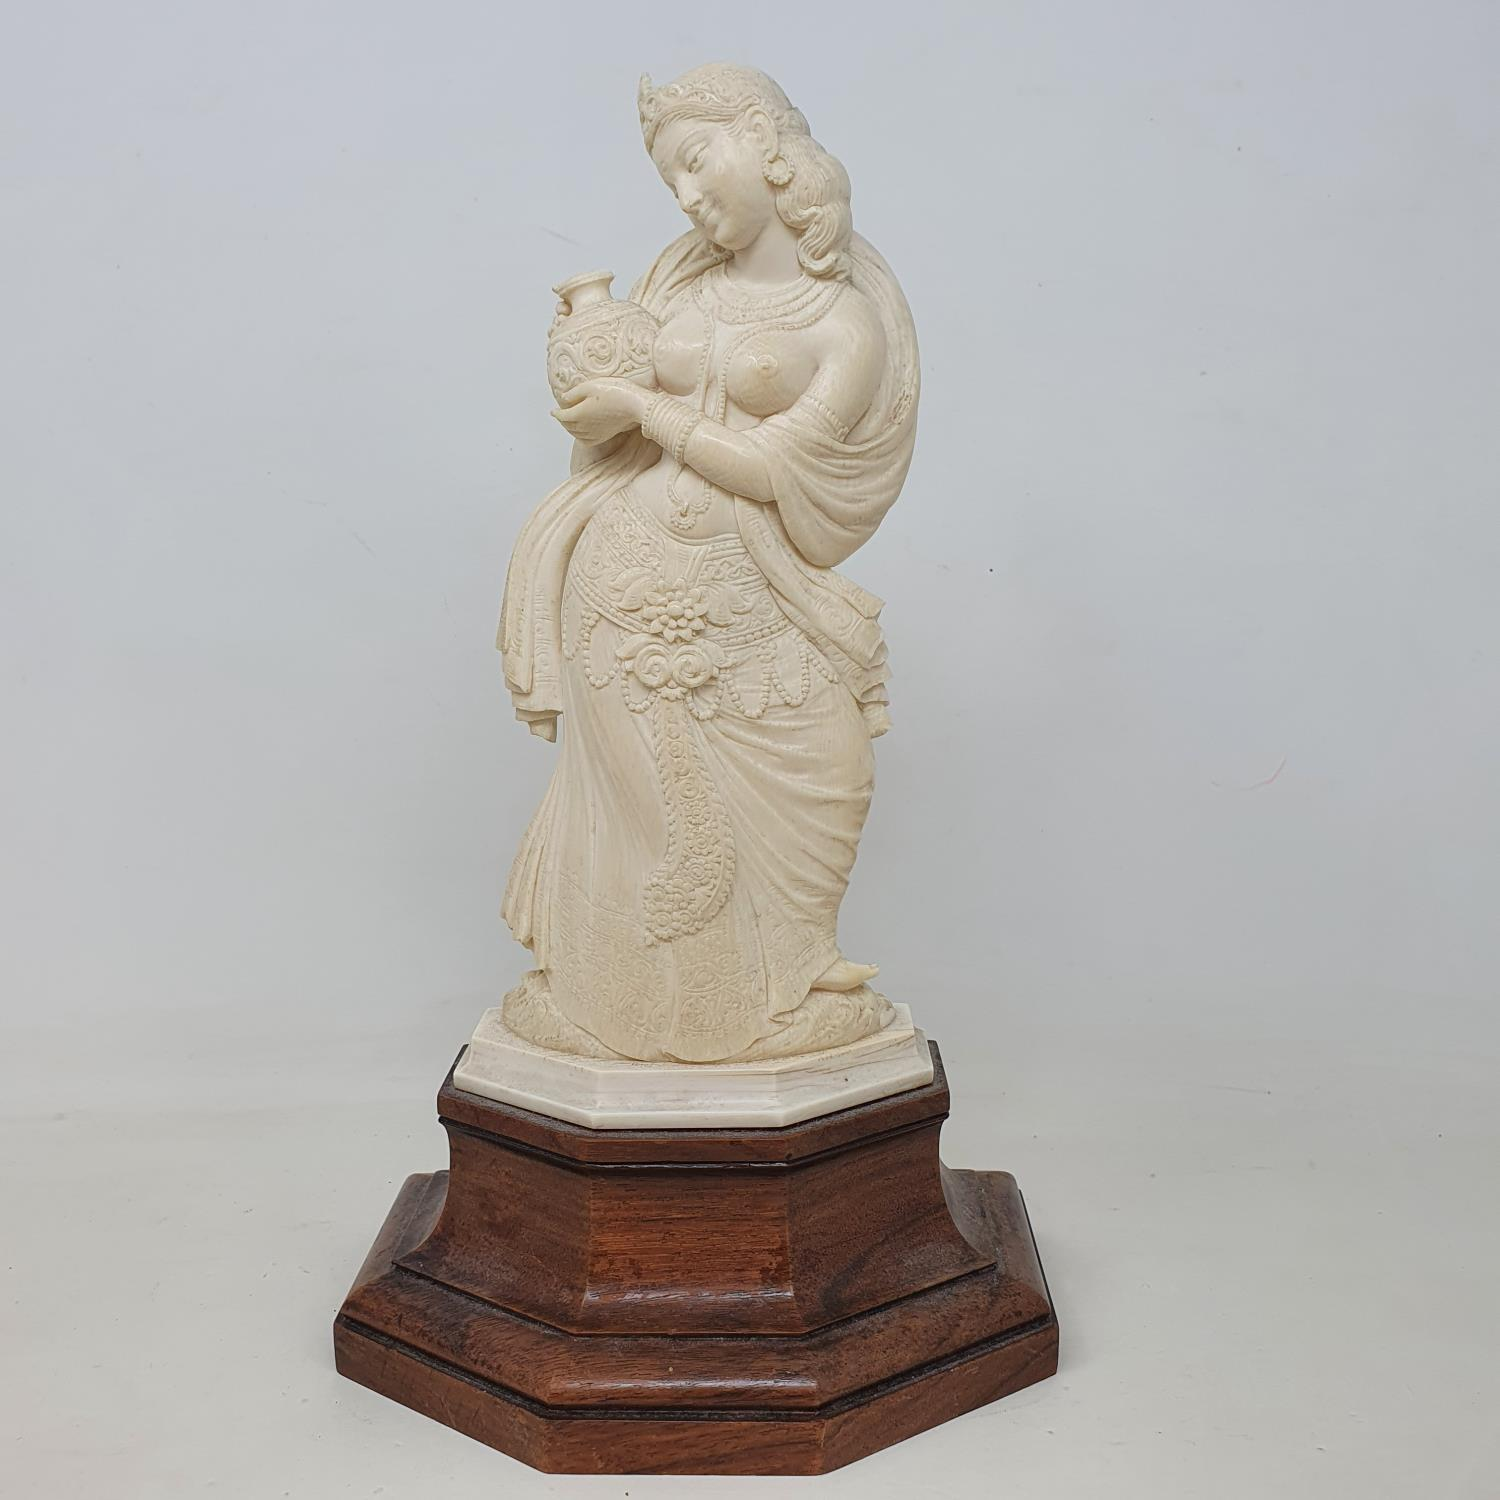 An early 20th century Indian carved ivory figure, of a woman holding a vase, on a wooden base, 28 cm